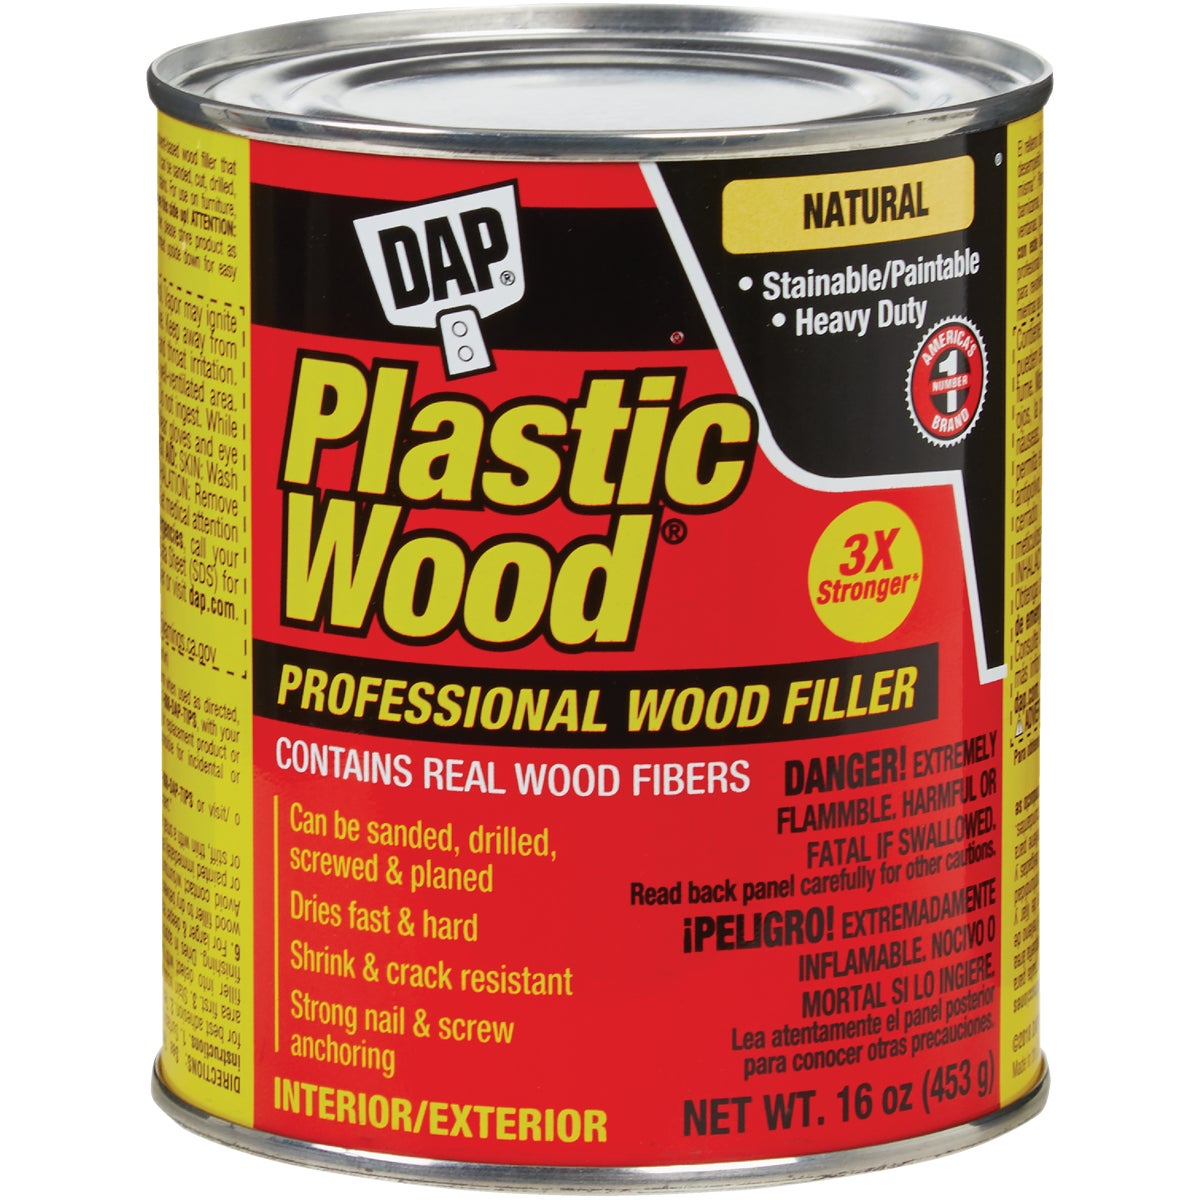 16OZ NATURL PLASTIC WOOD - 21506 by Dap Inc